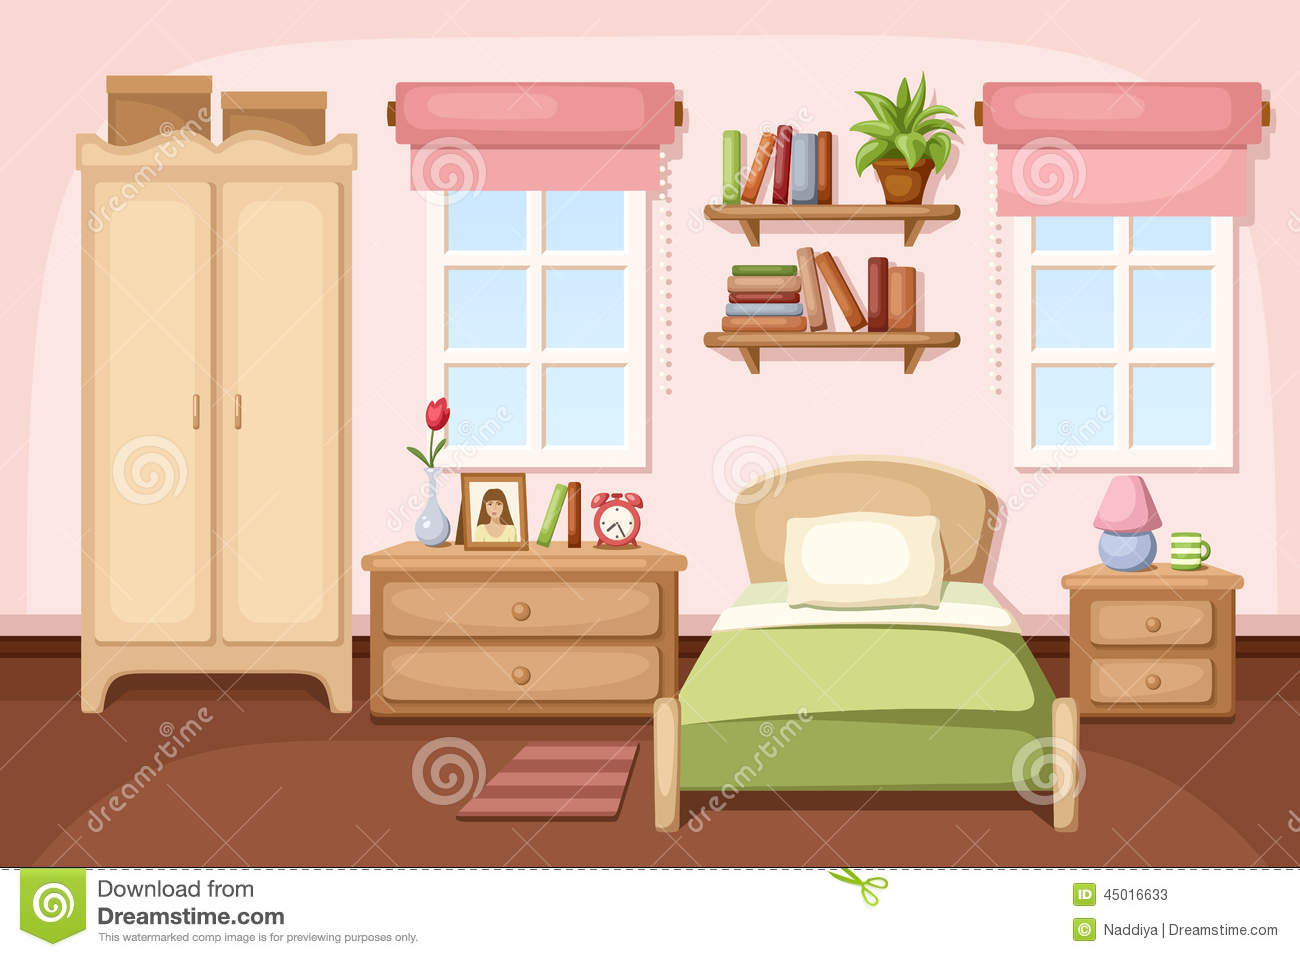 Cartoon kitchen with cabinets and window vector art illustration - Vector Illustration Of A Bedroom Interior With A Bed Nightstands A